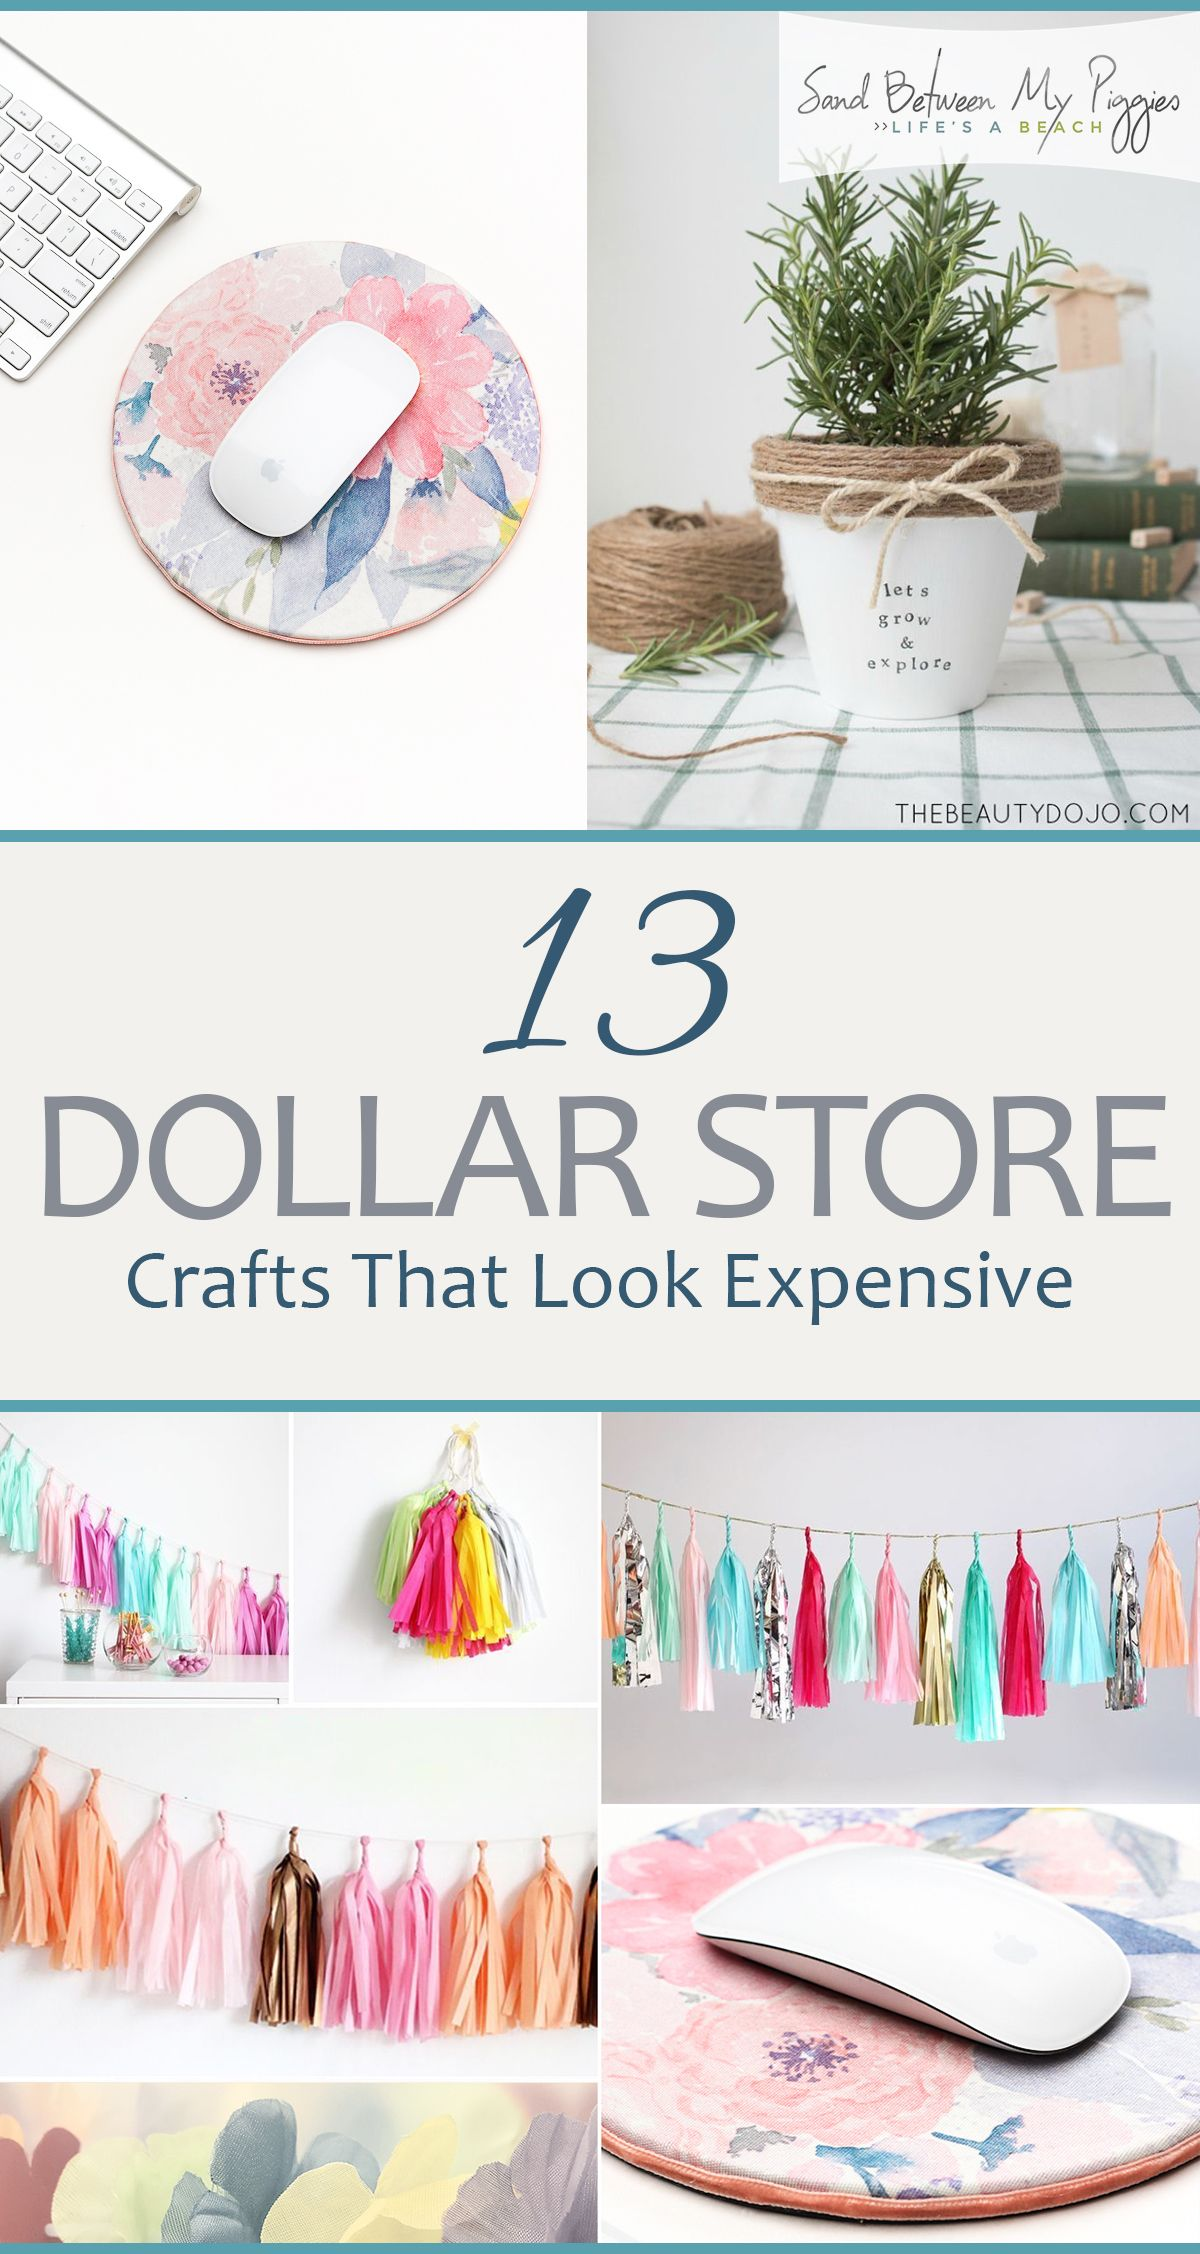 13 Dollar Store Crafts That Look Expensive #craftstosell